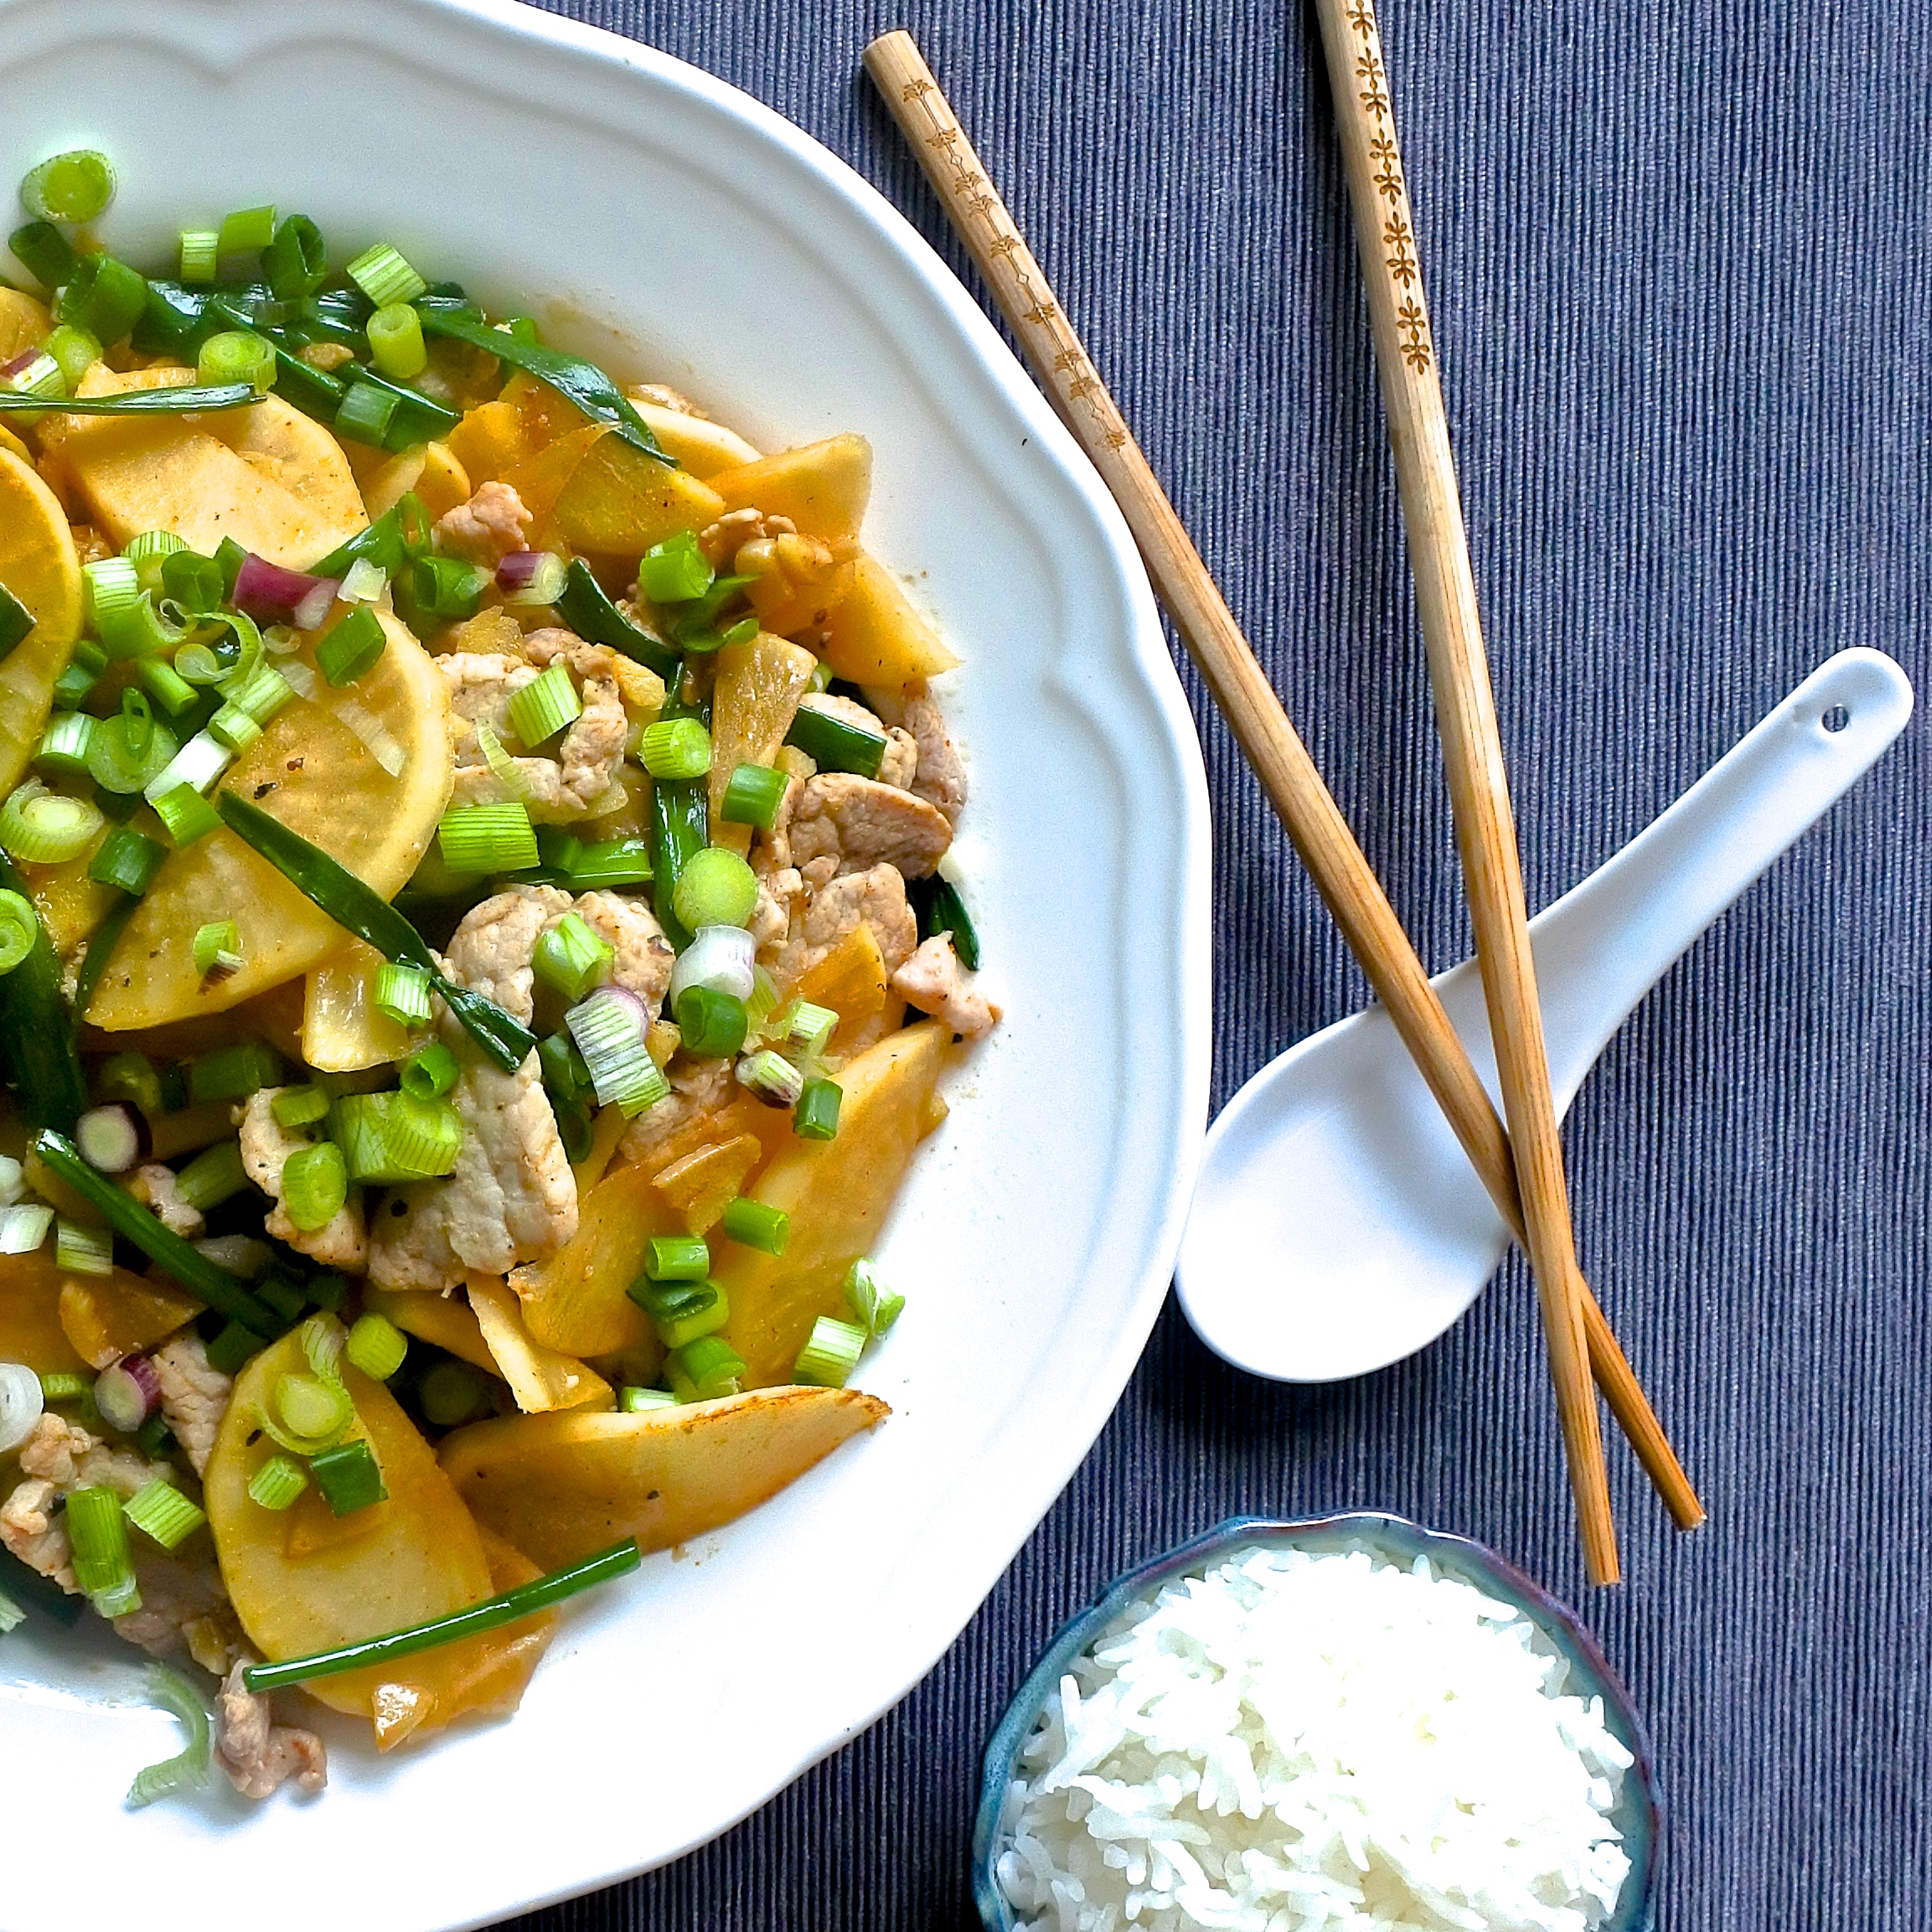 Pork and Pickled Daikon Stir-fry